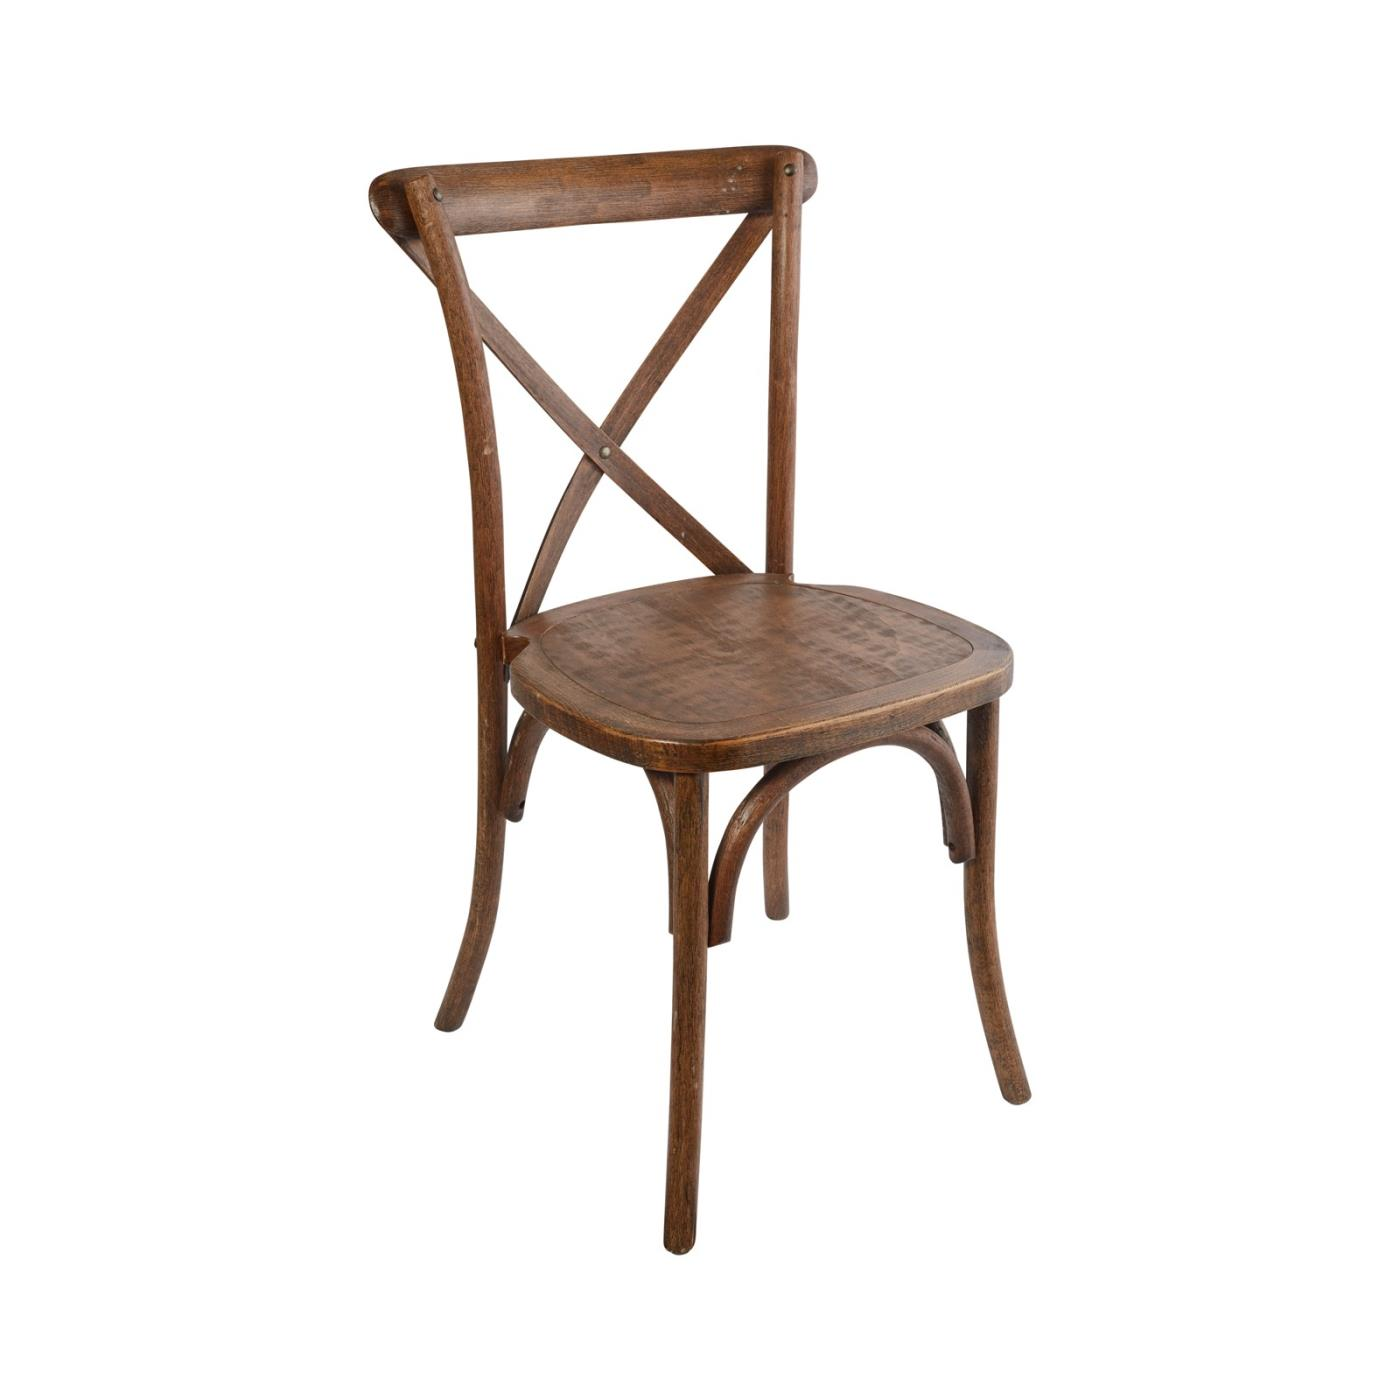 Antique Farm Chair - Antique Farm Chair